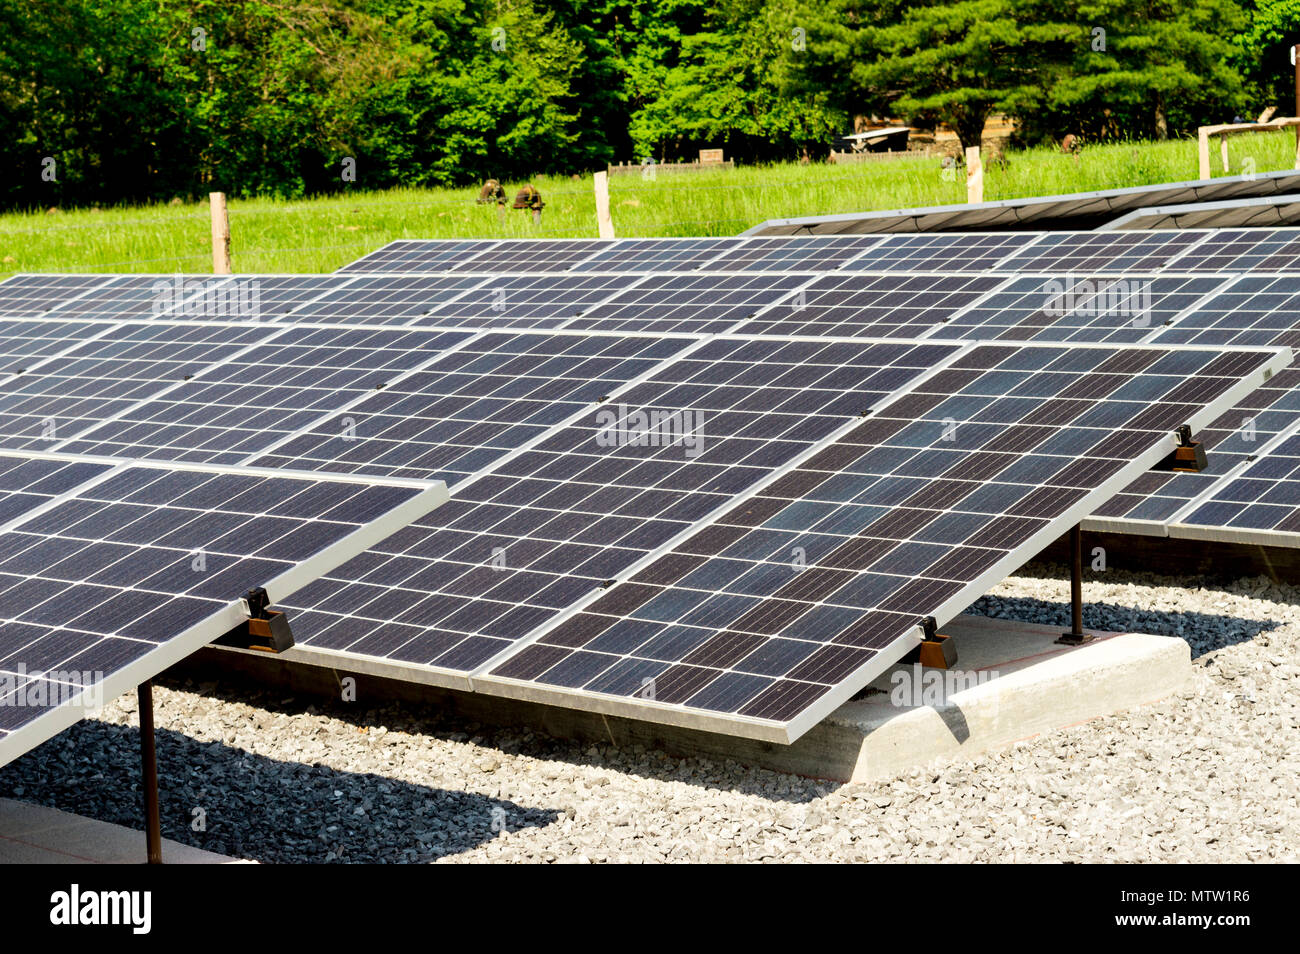 Close up of solar panels with focus on the front. Cades Cove Tennessee - Stock Image